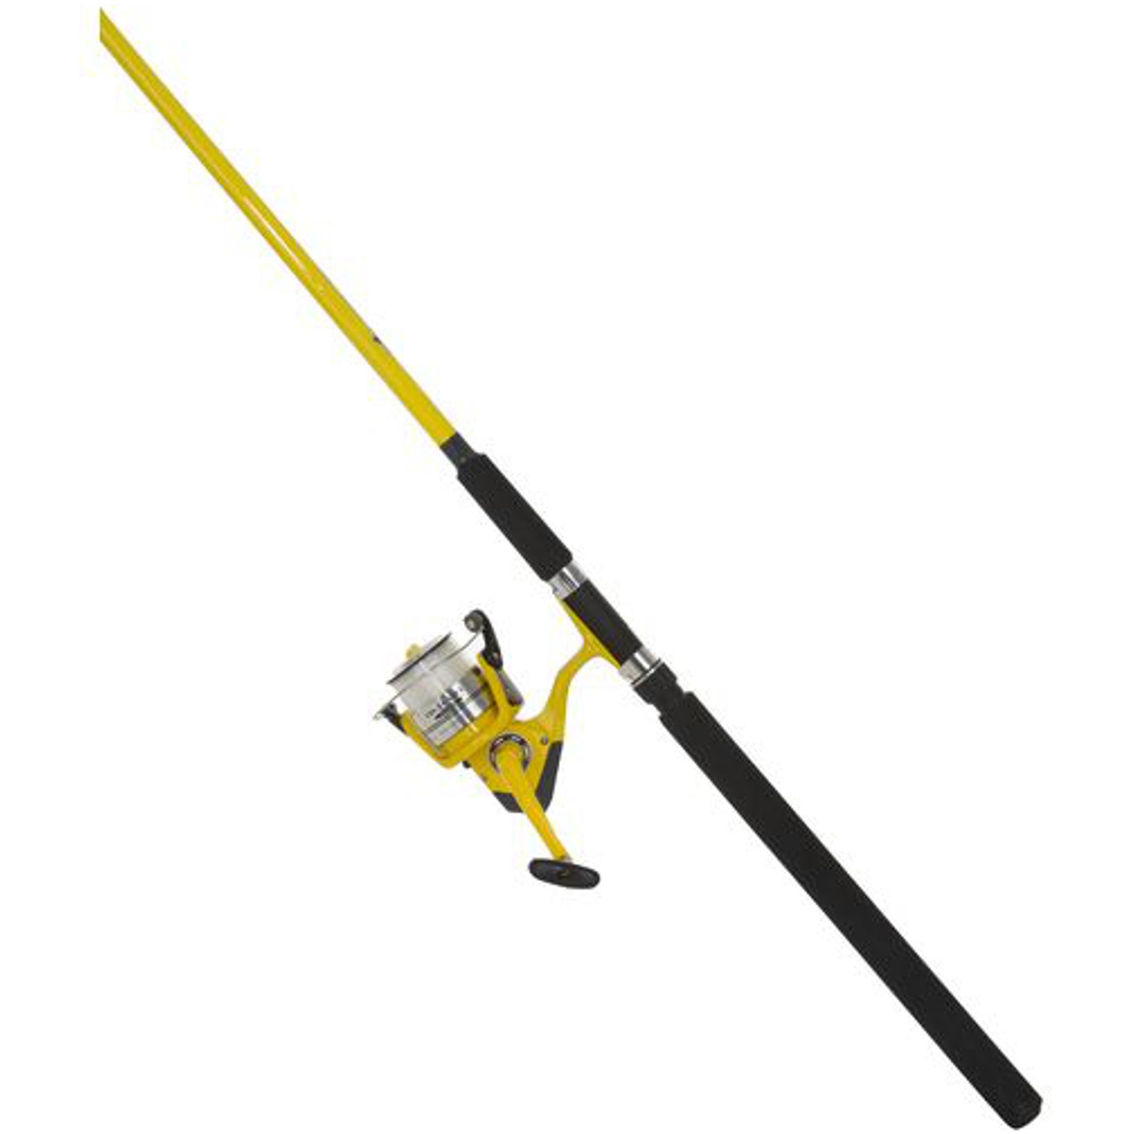 Okuma fin chaser spinning combo yellow saltwater rods for Saltwater fly fishing combo